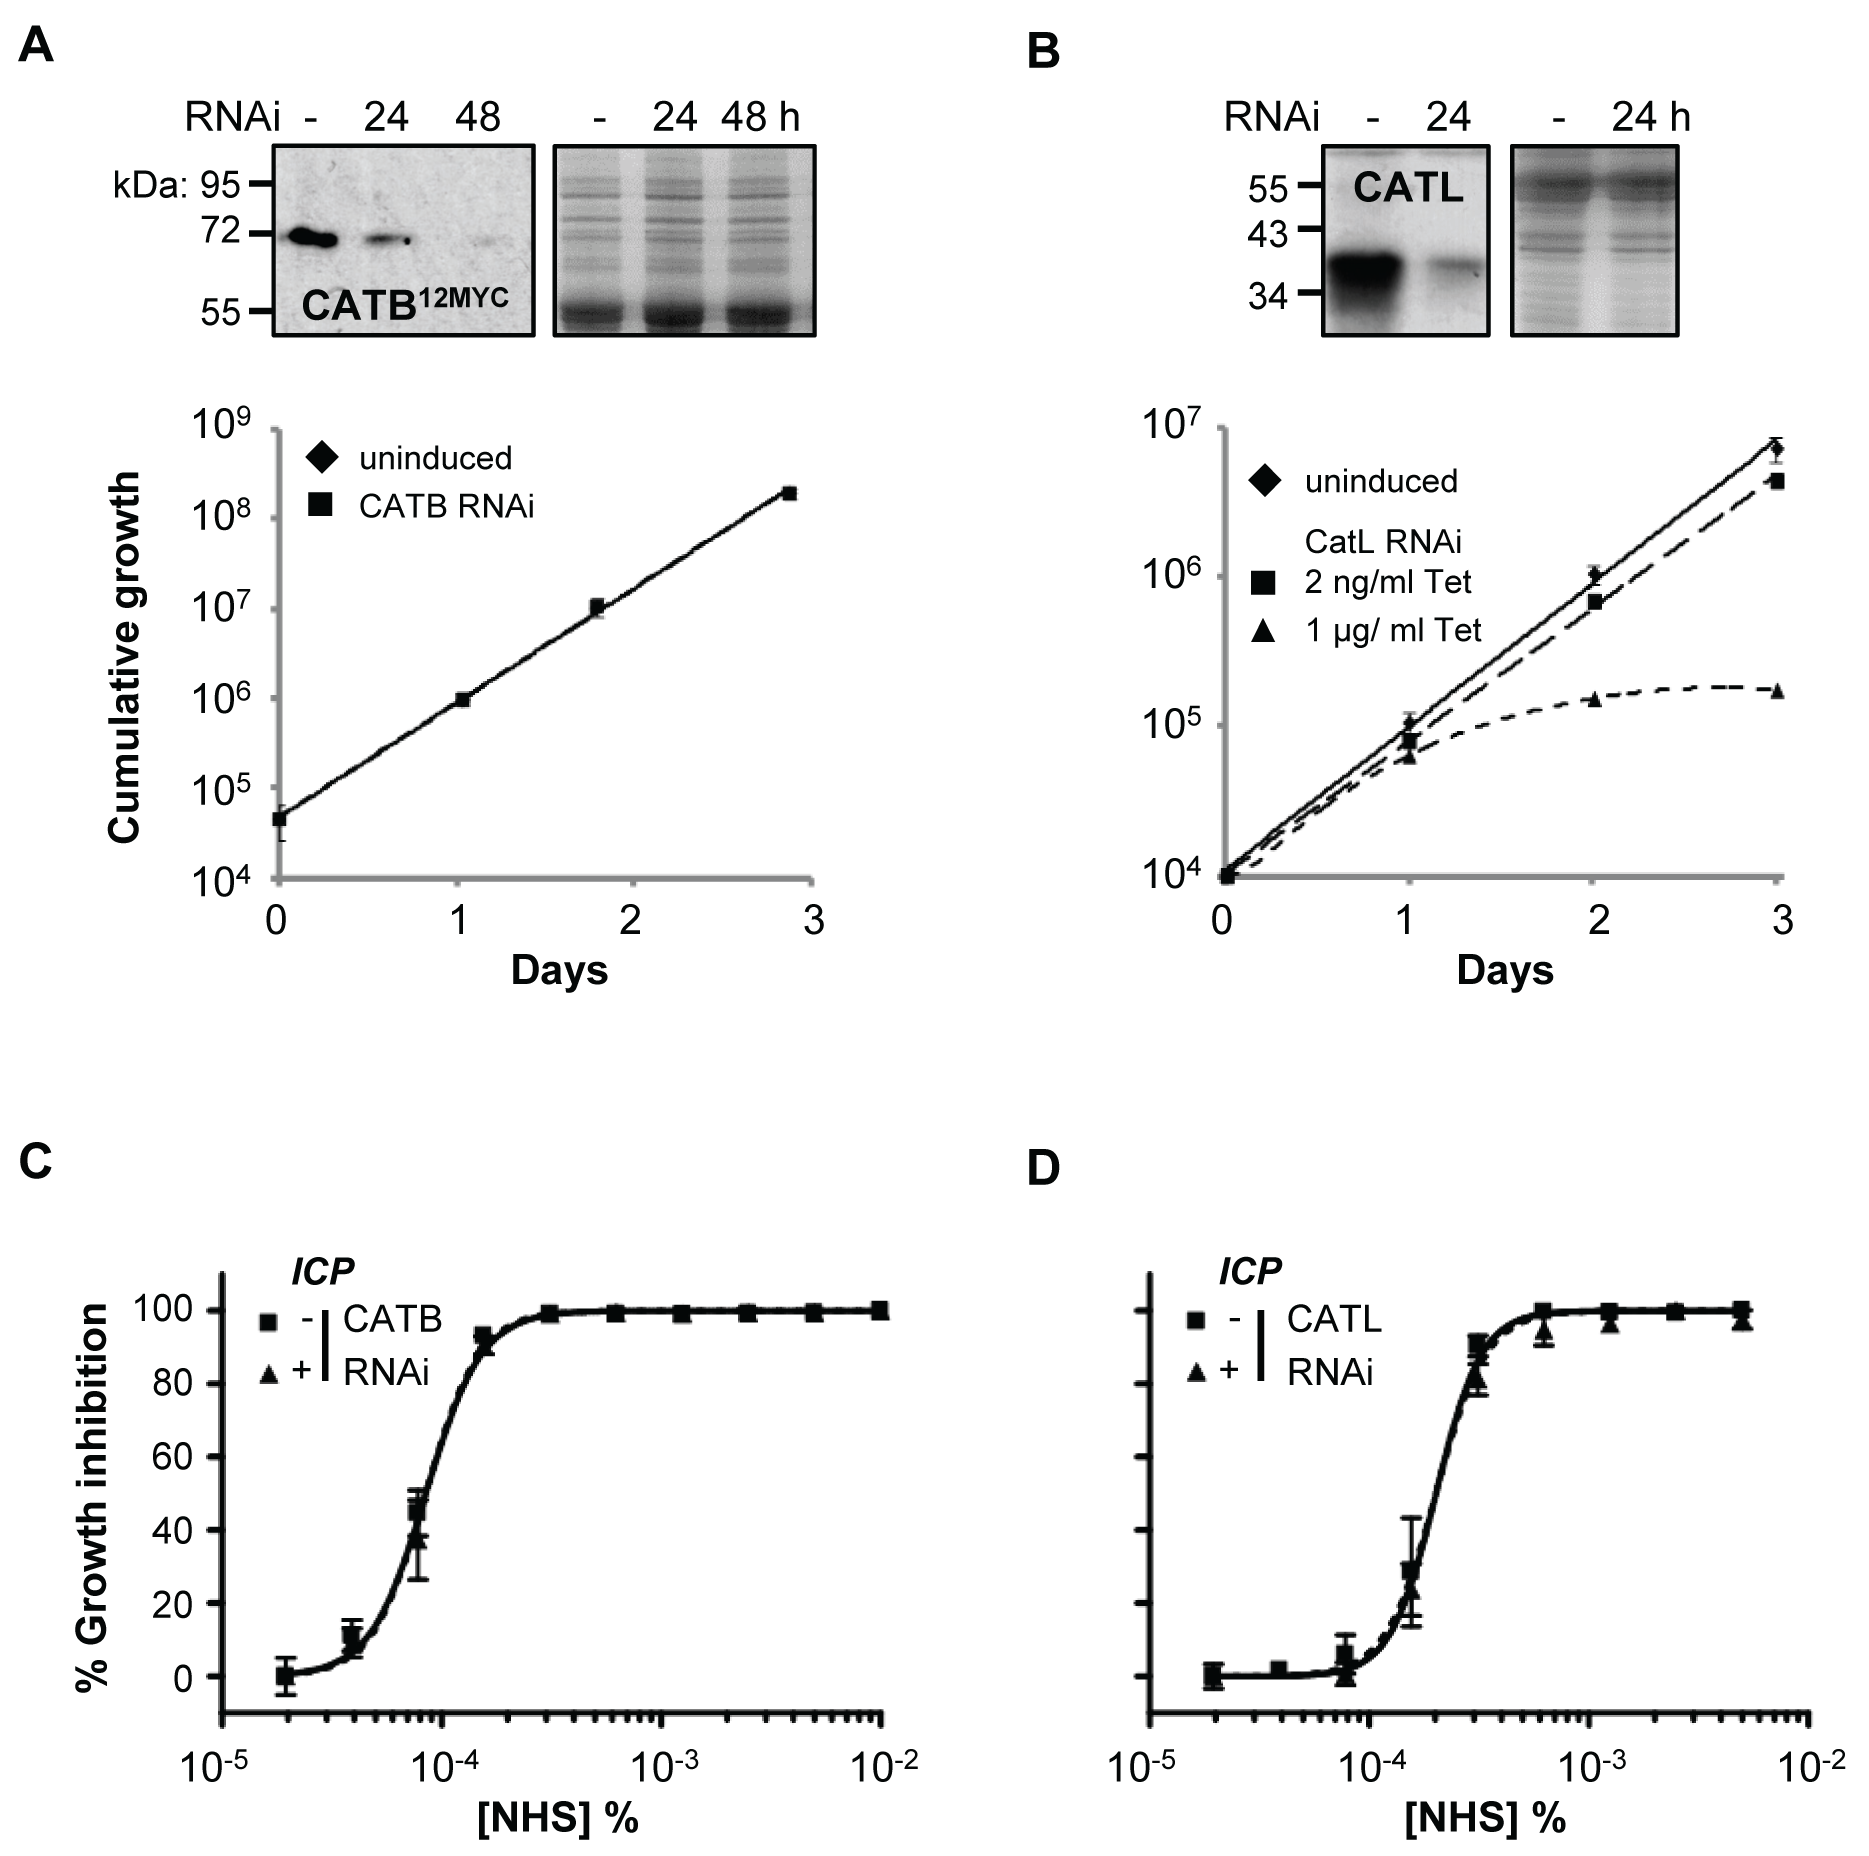 Specific depletion of <i>T. b. brucei</i> cathepsins in the presence of ICP has no effect on human serum trypanolytic activity.